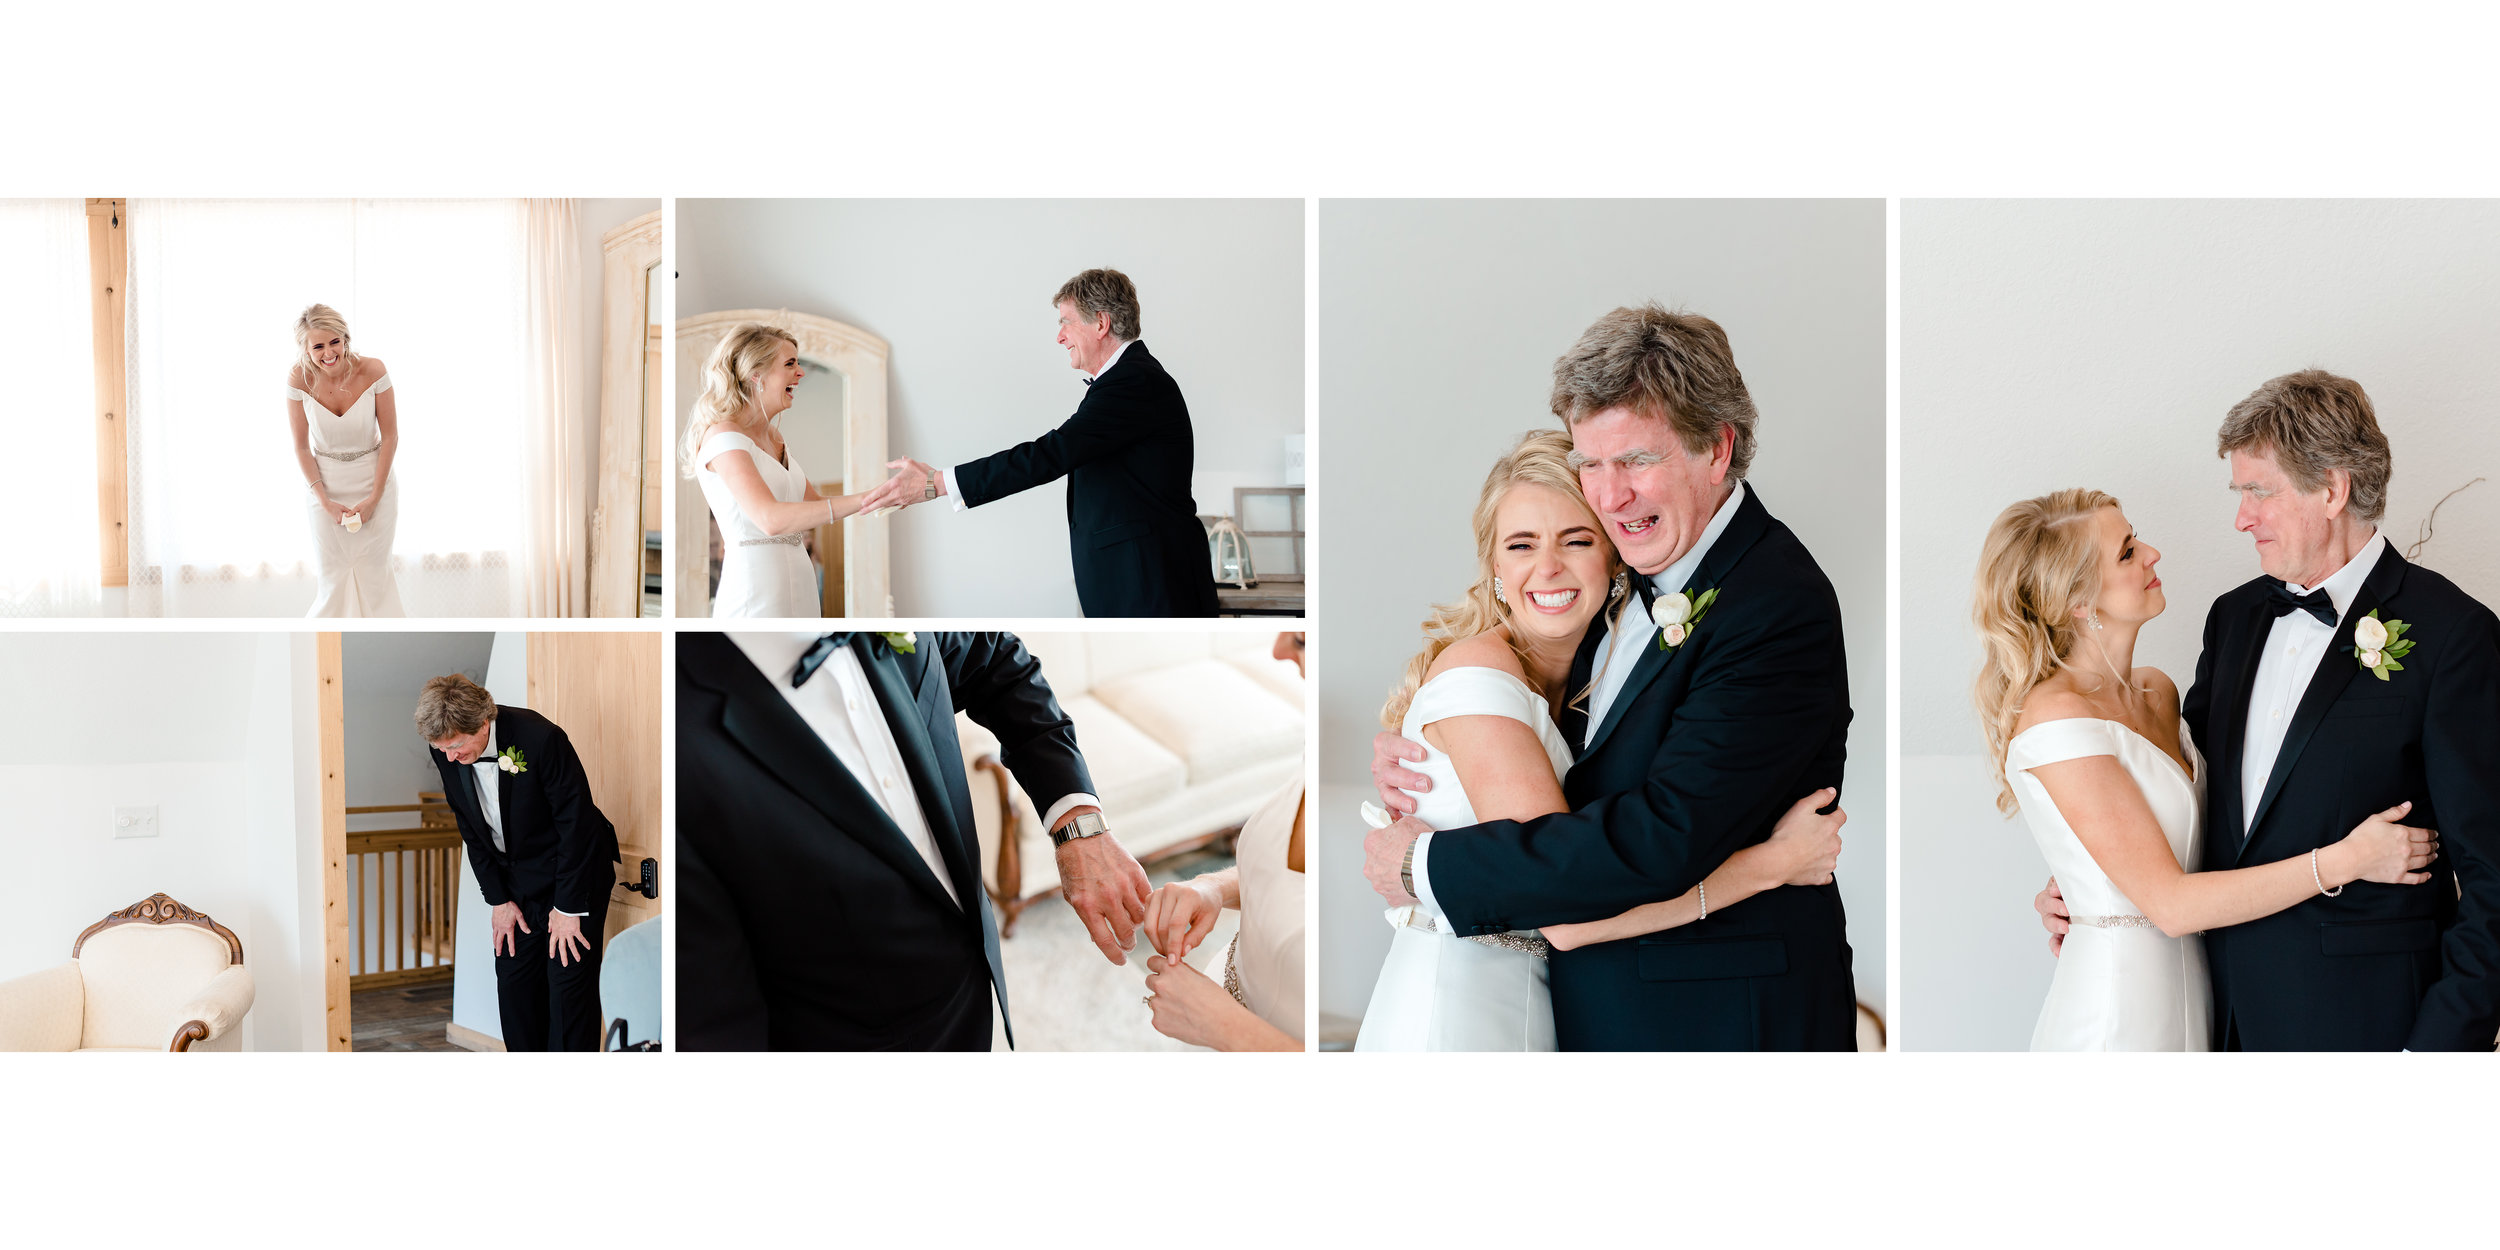 Amanda + Justin - Wedding Album_10.jpg